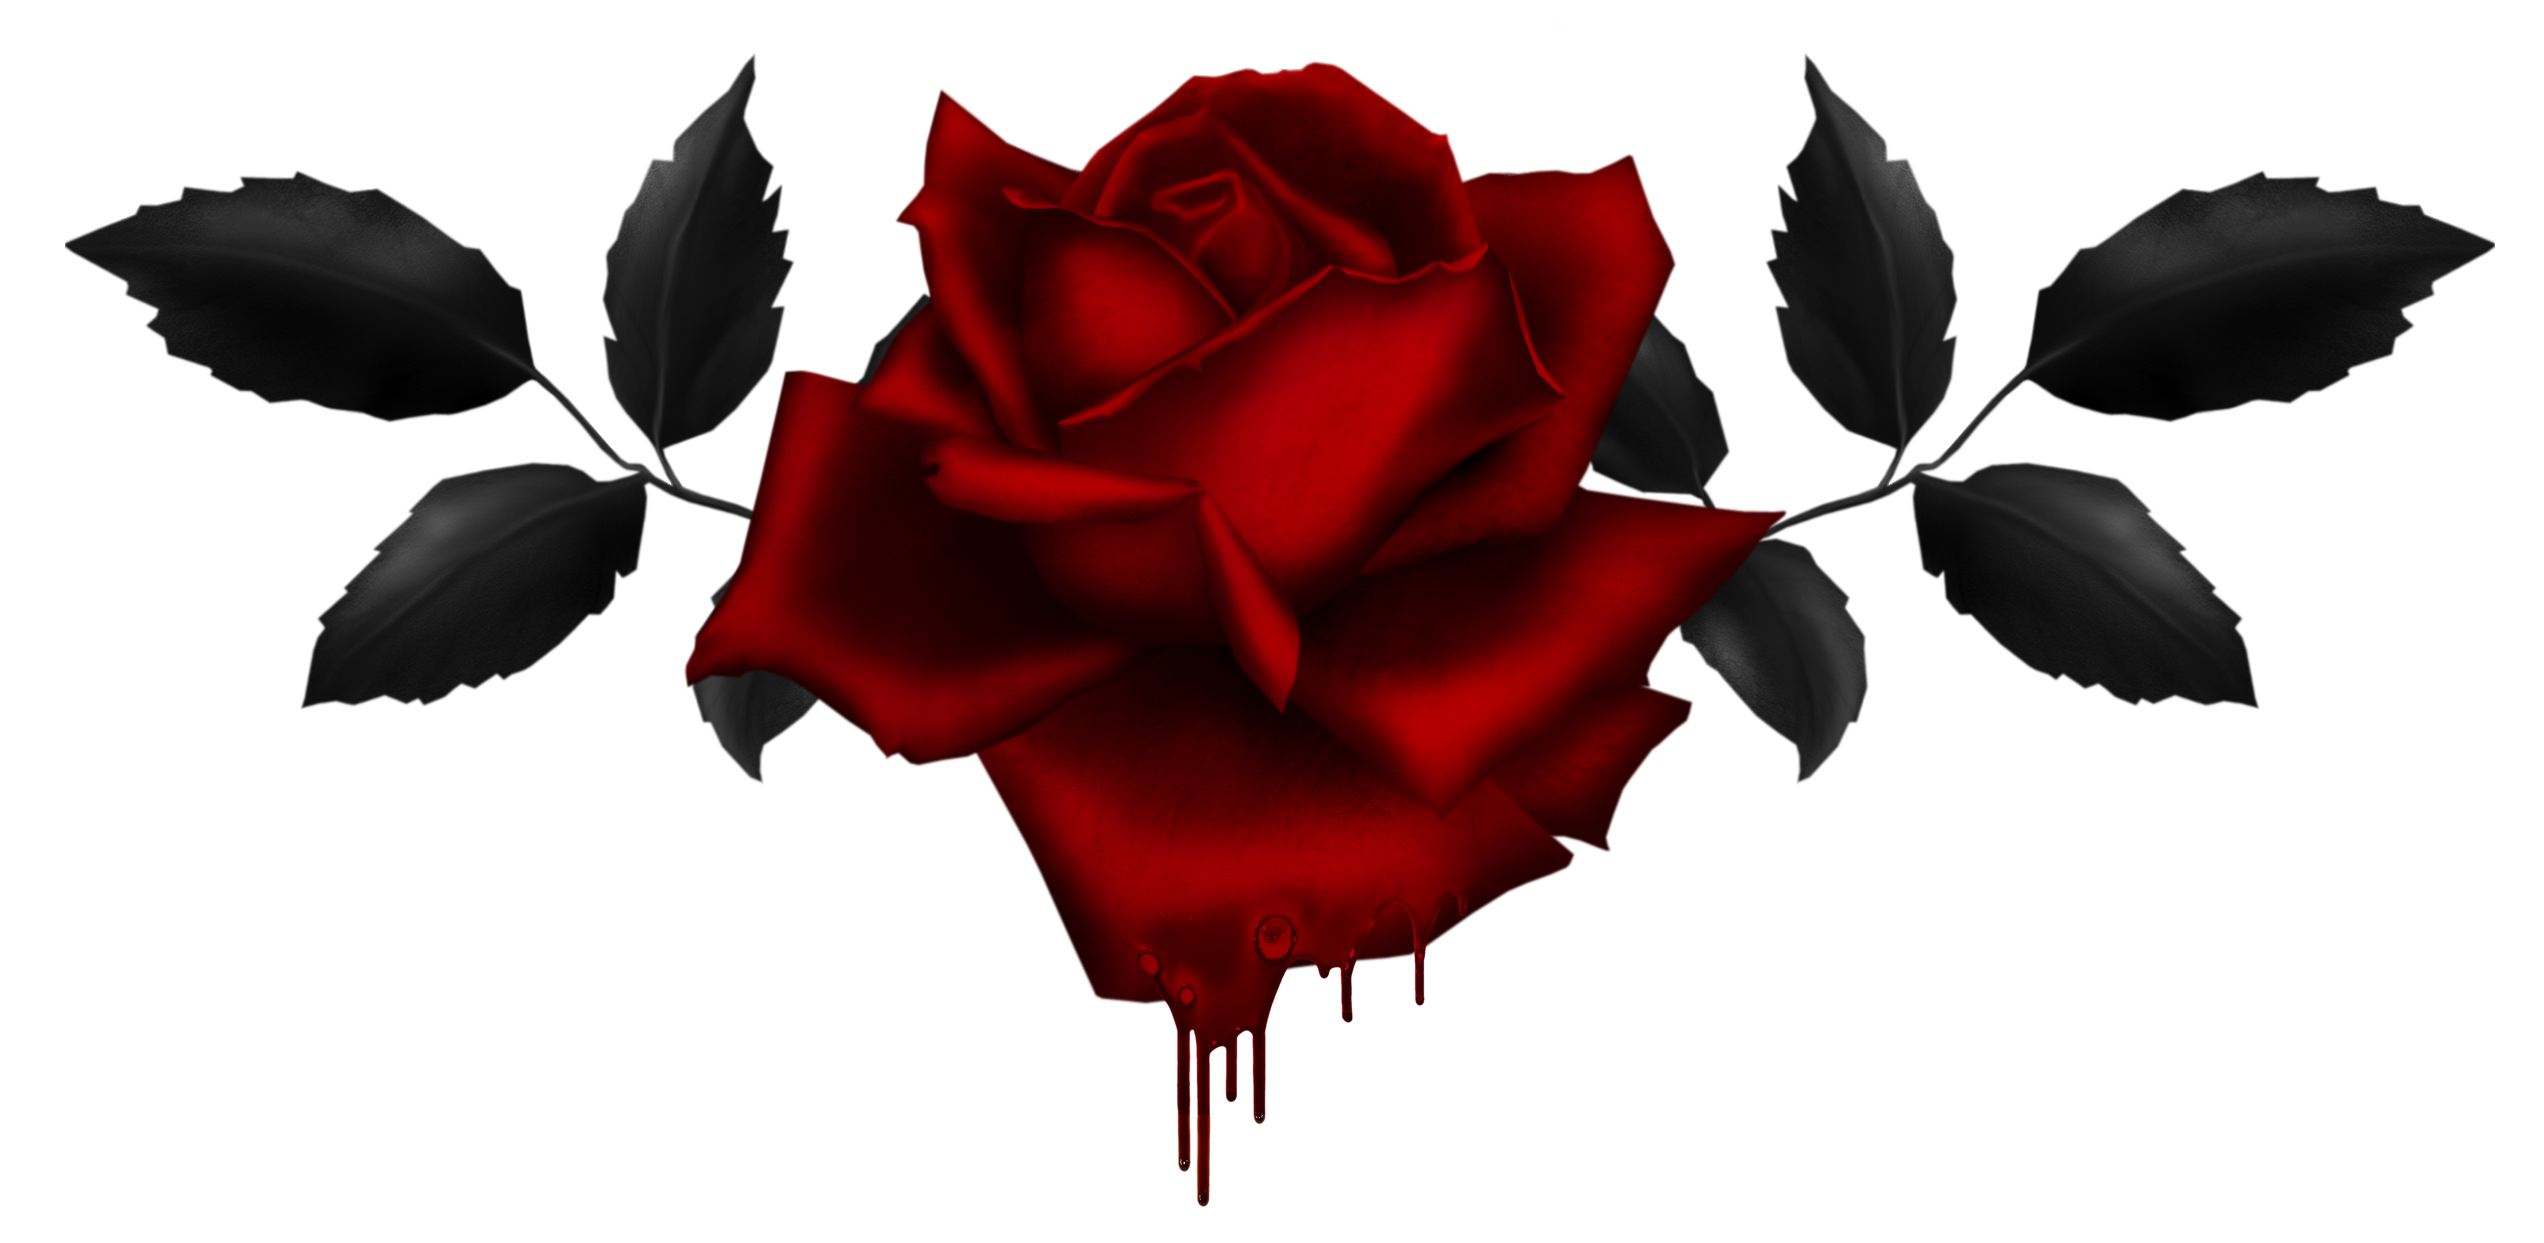 Rose at getdrawings com. Win clipart gothic architecture drawing